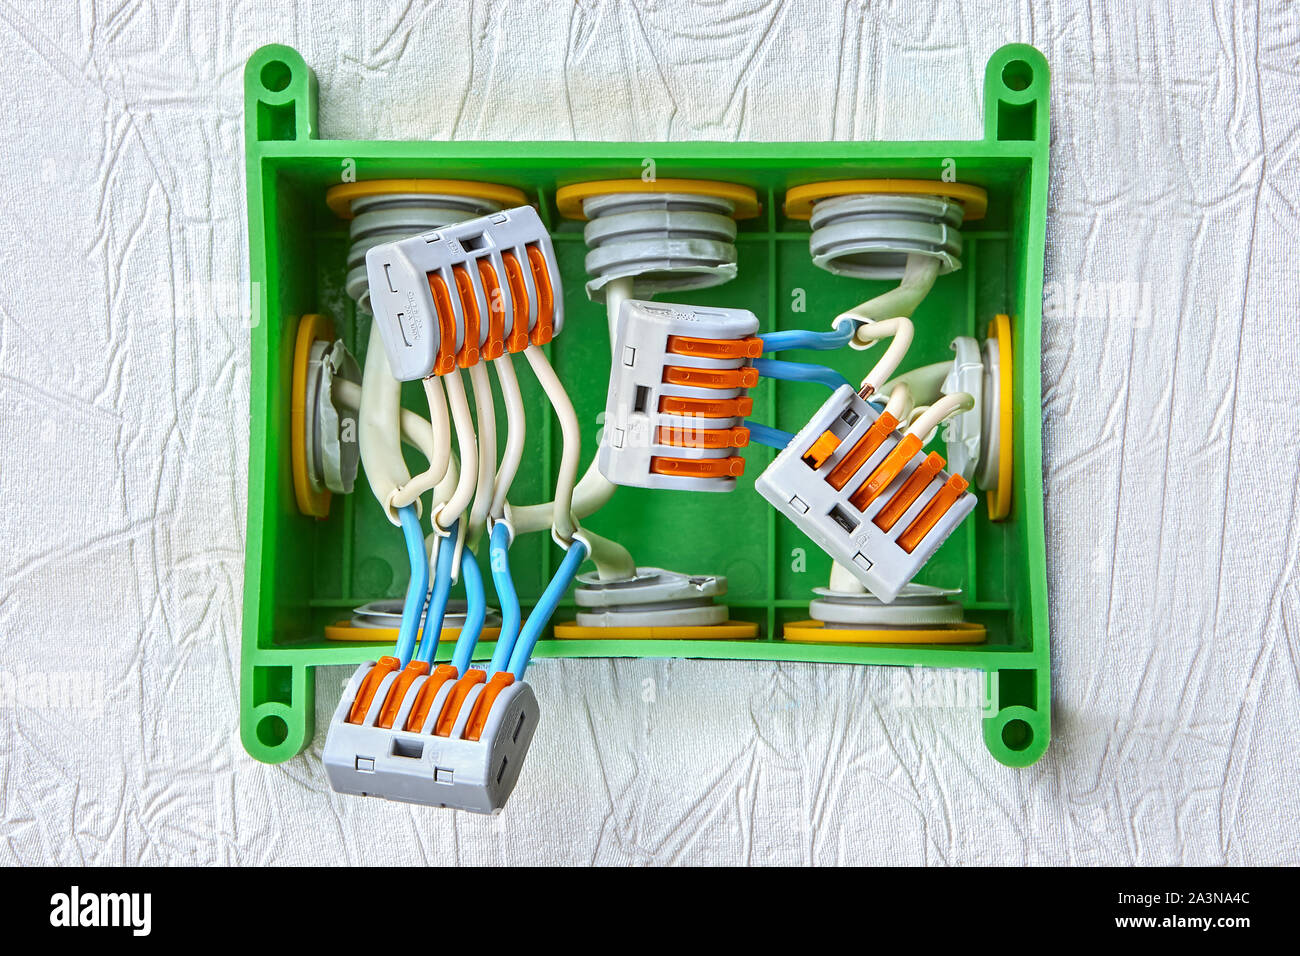 Domestic Electrical Installation High Resolution Stock Photography And Images Alamy